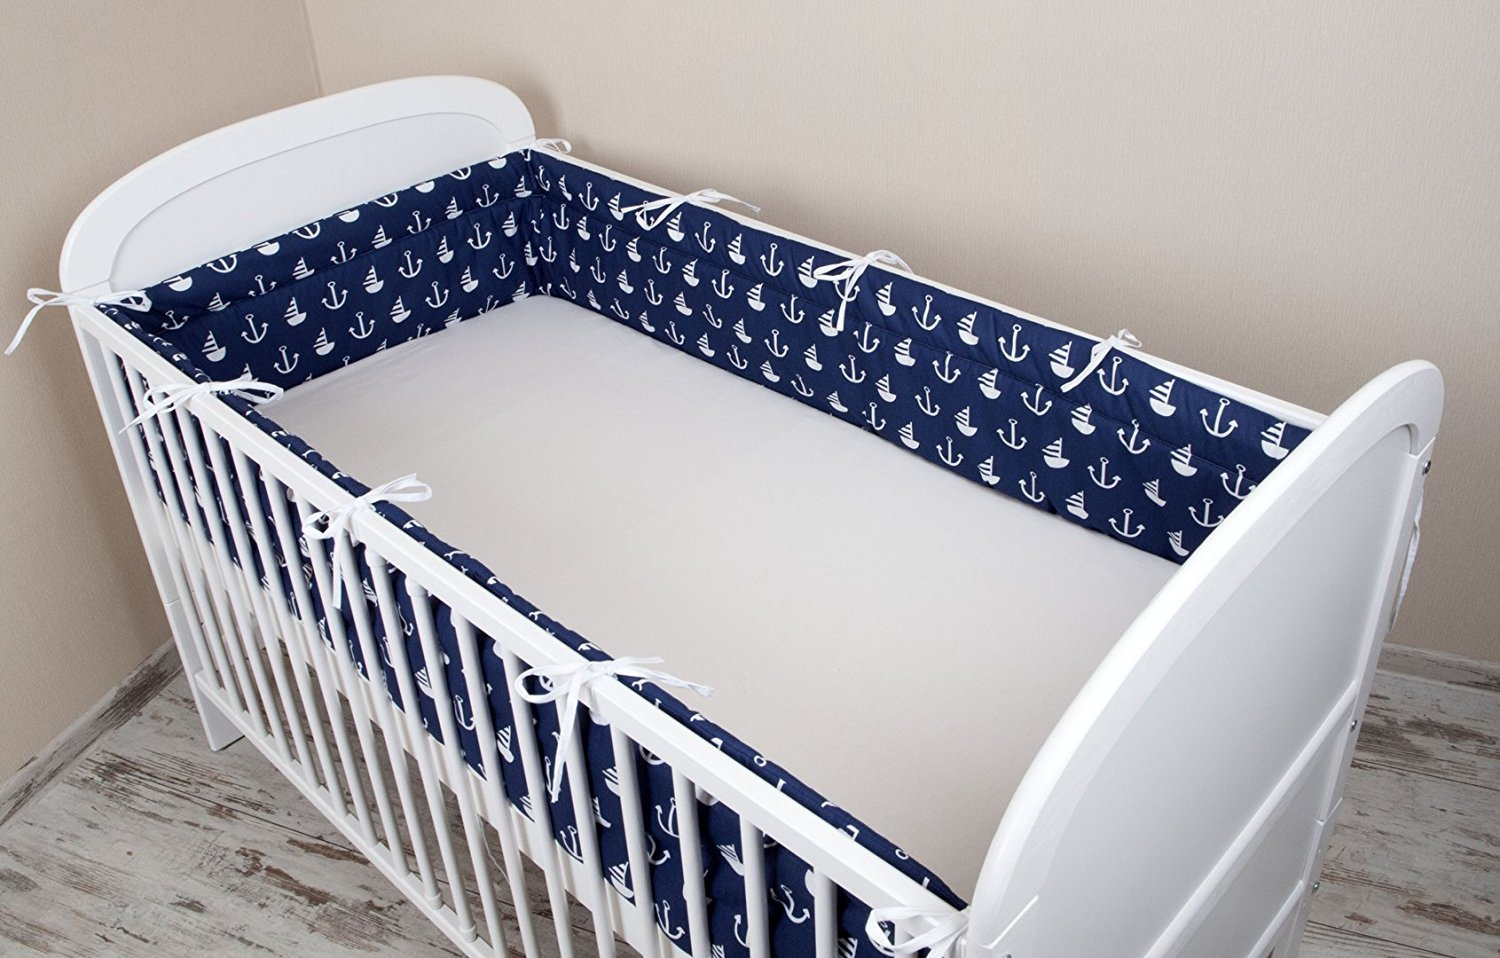 Amilian® Baby Cot Bumper Wrap Around Protection For Baby's Bed With Head Guard 100% hypo-Allergenic 100% Cotton Breathable and non-toxic materials Anti-allergic Anchor Print Navy Blue Available In 3 Sizes (420 cm x 30 cm) (360 cm 30 cm) (180 cm x 30 cm)